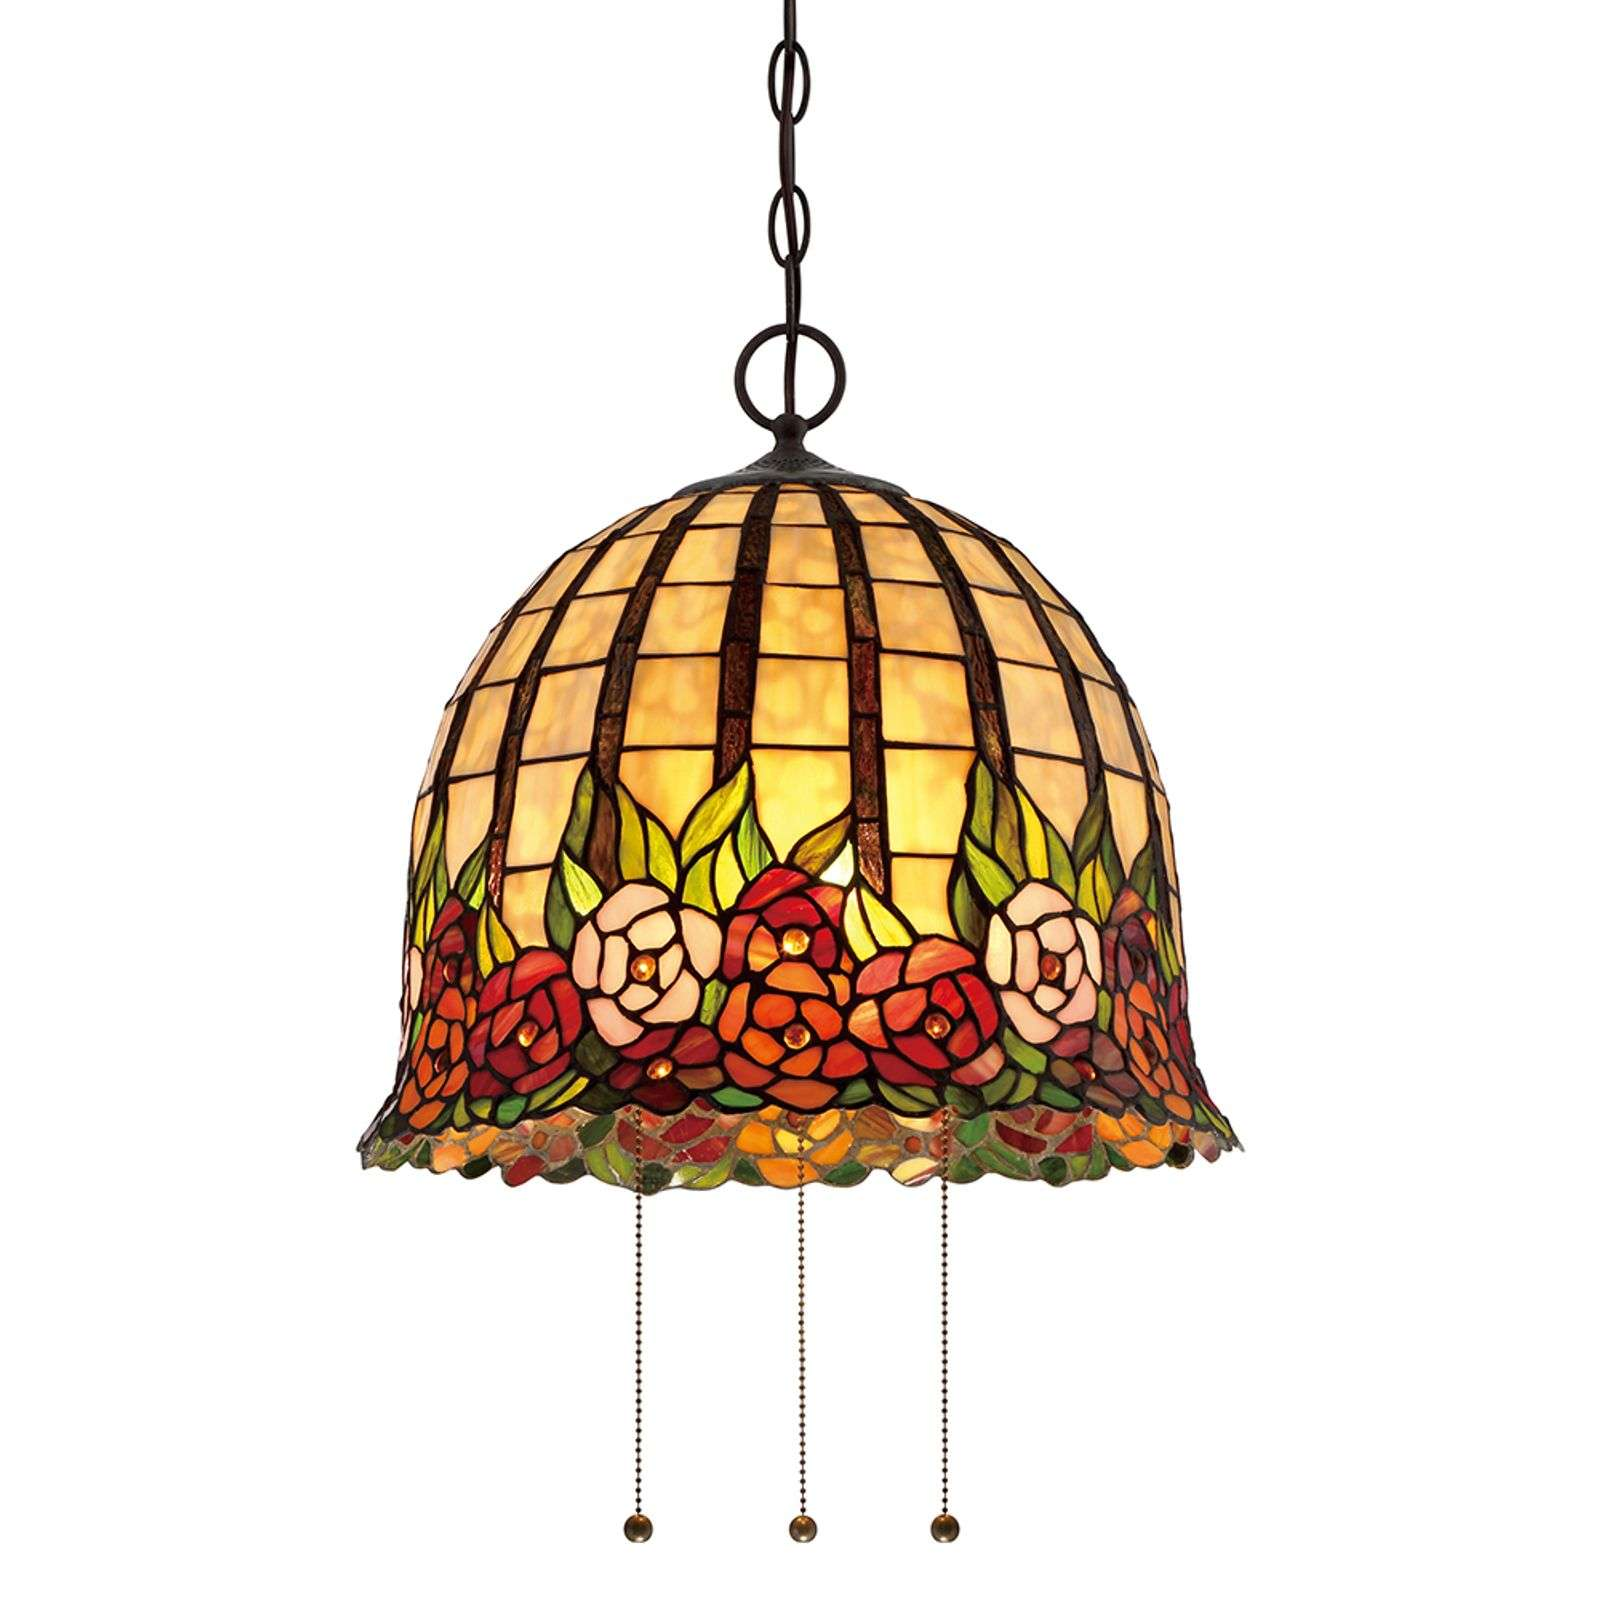 Suspension Tiffany Rosecliff au design floral